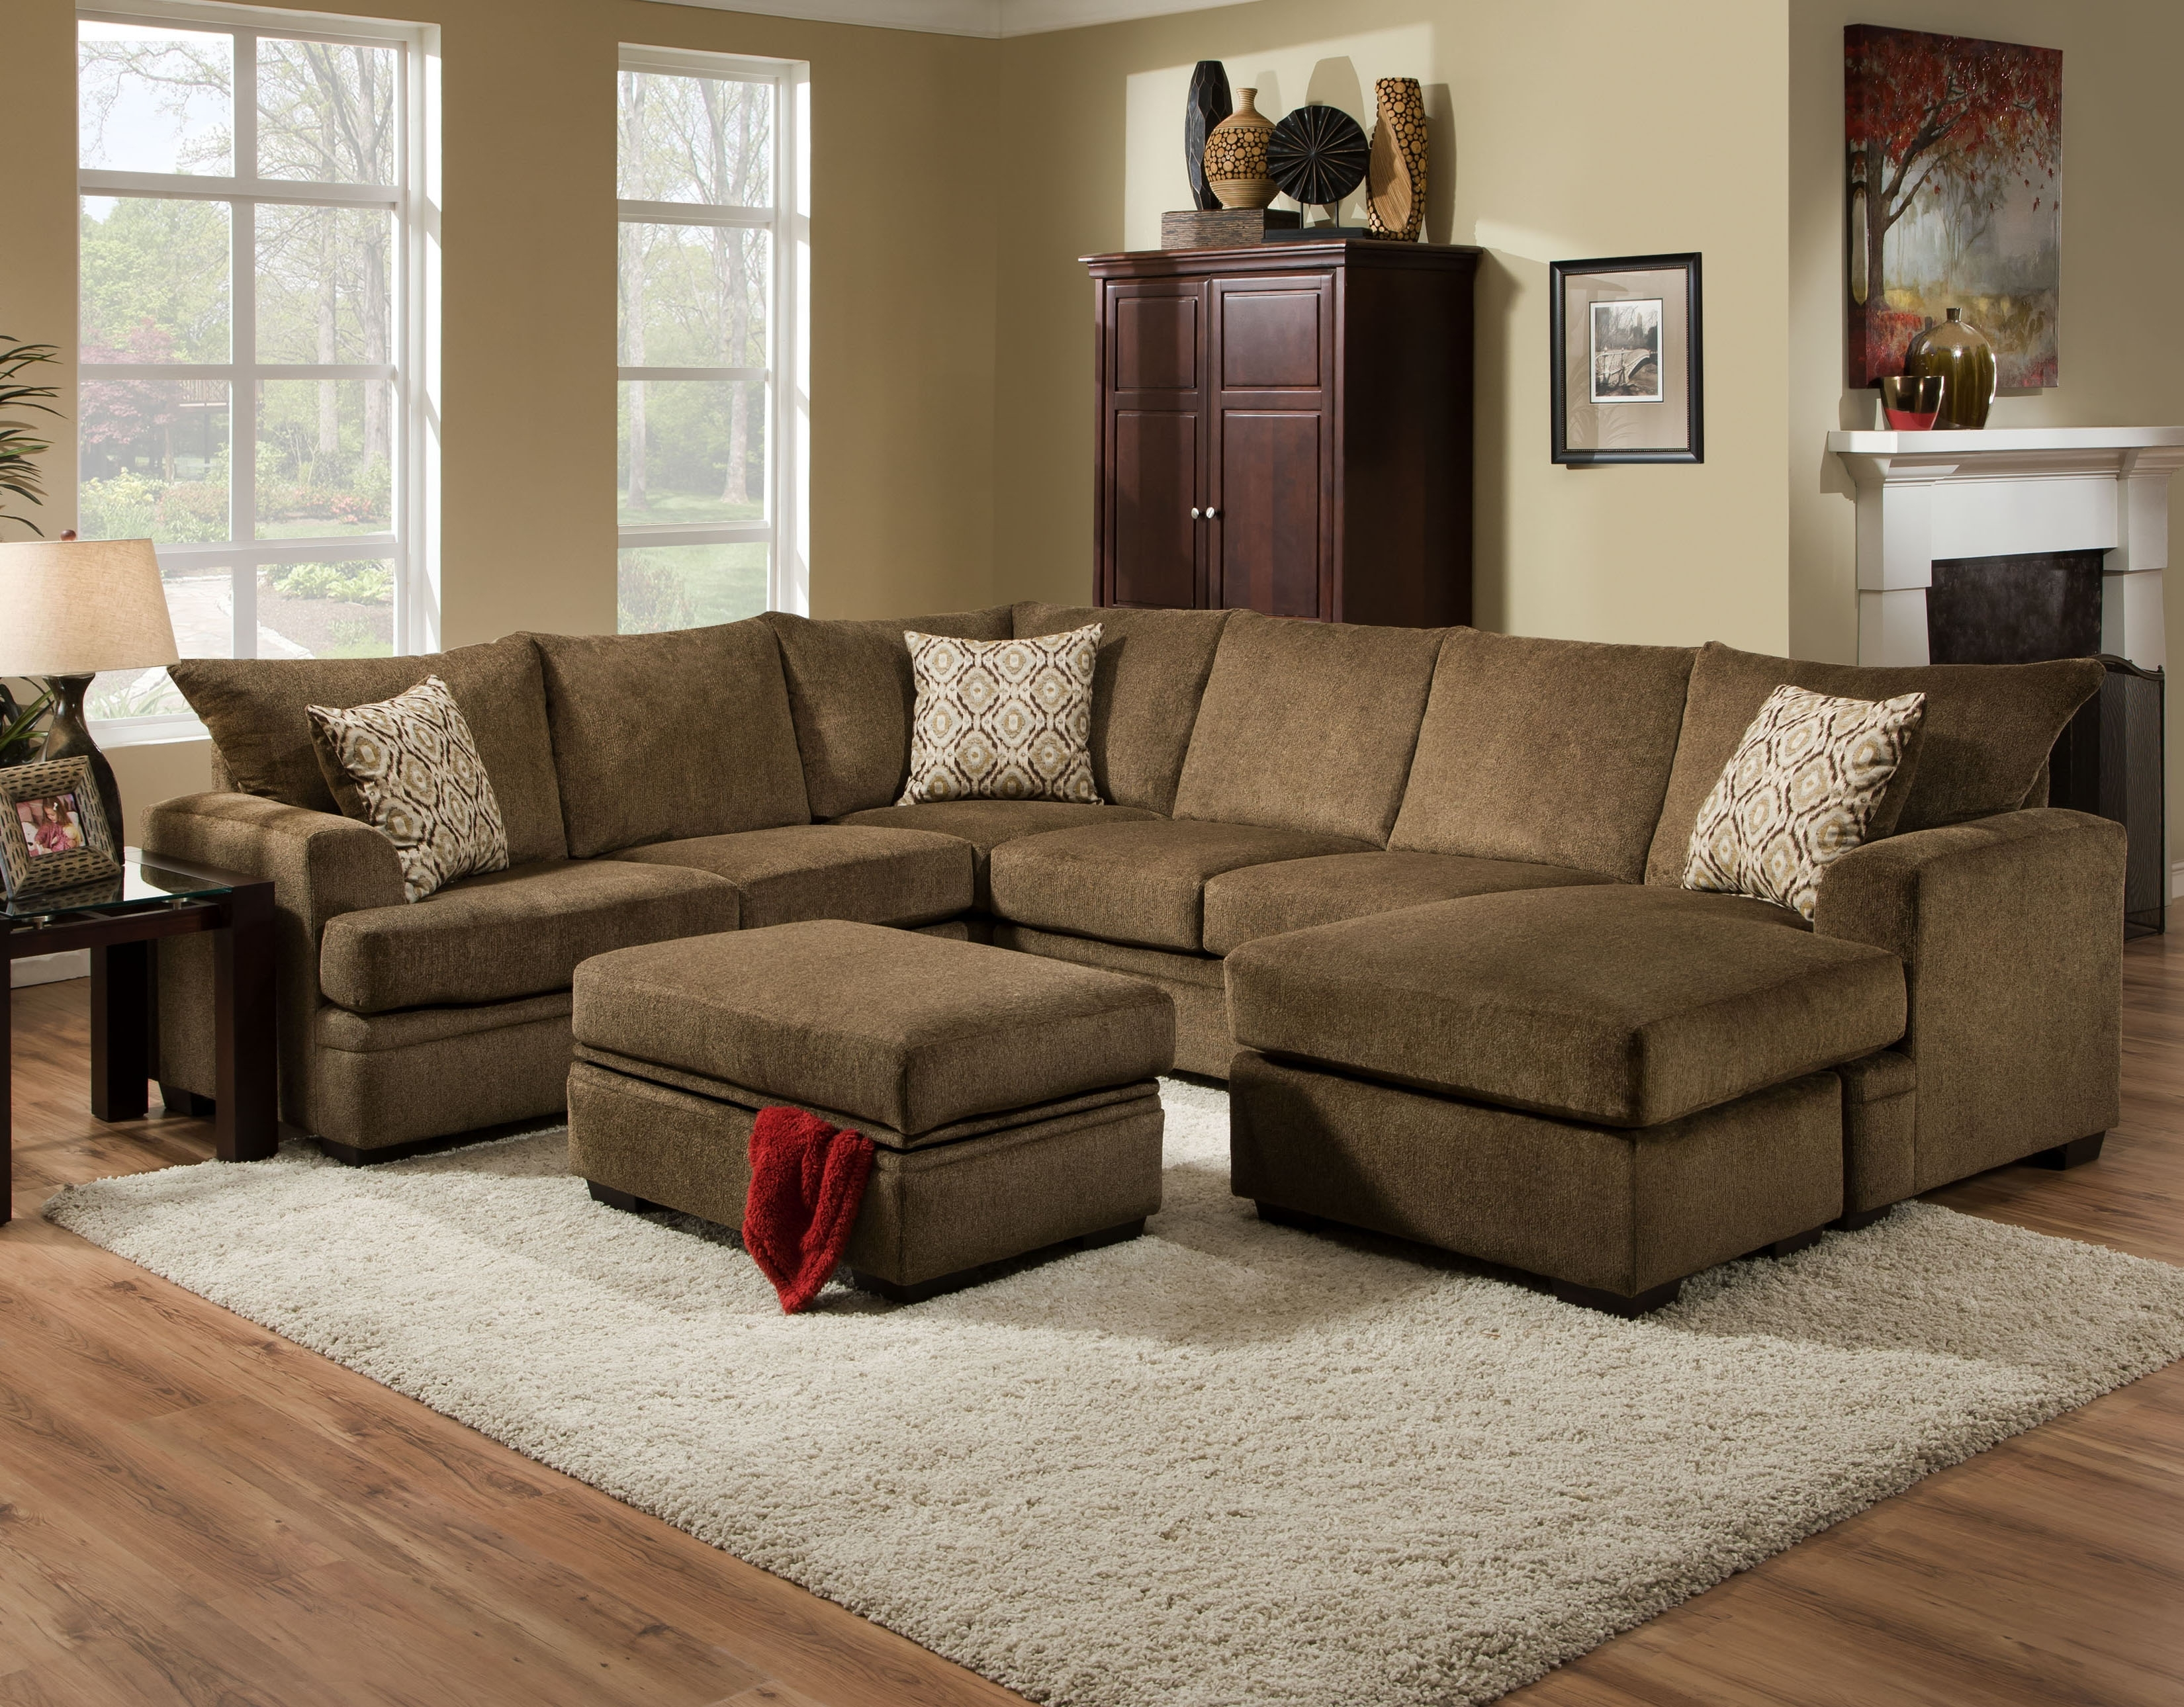 Living Room – Crazy Joe's Best Deal Furniture inside Janesville Wi Sectional Sofas (Image 4 of 10)